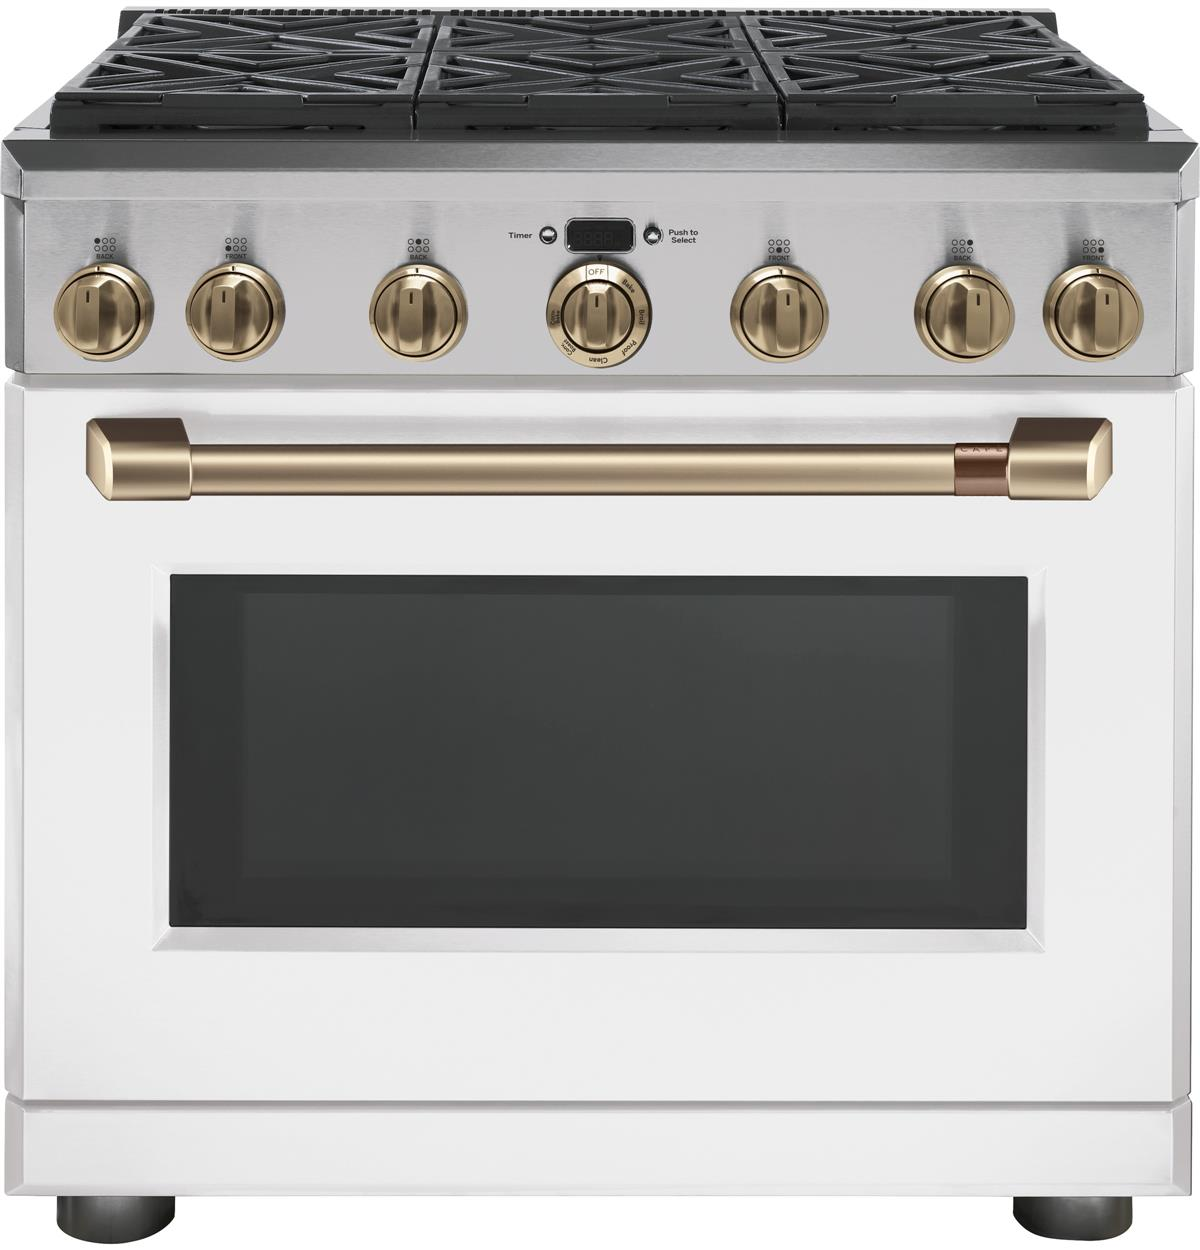 "Café™ 36"" All-Gas Professional Range with 6 Burners (Natural Gas)"